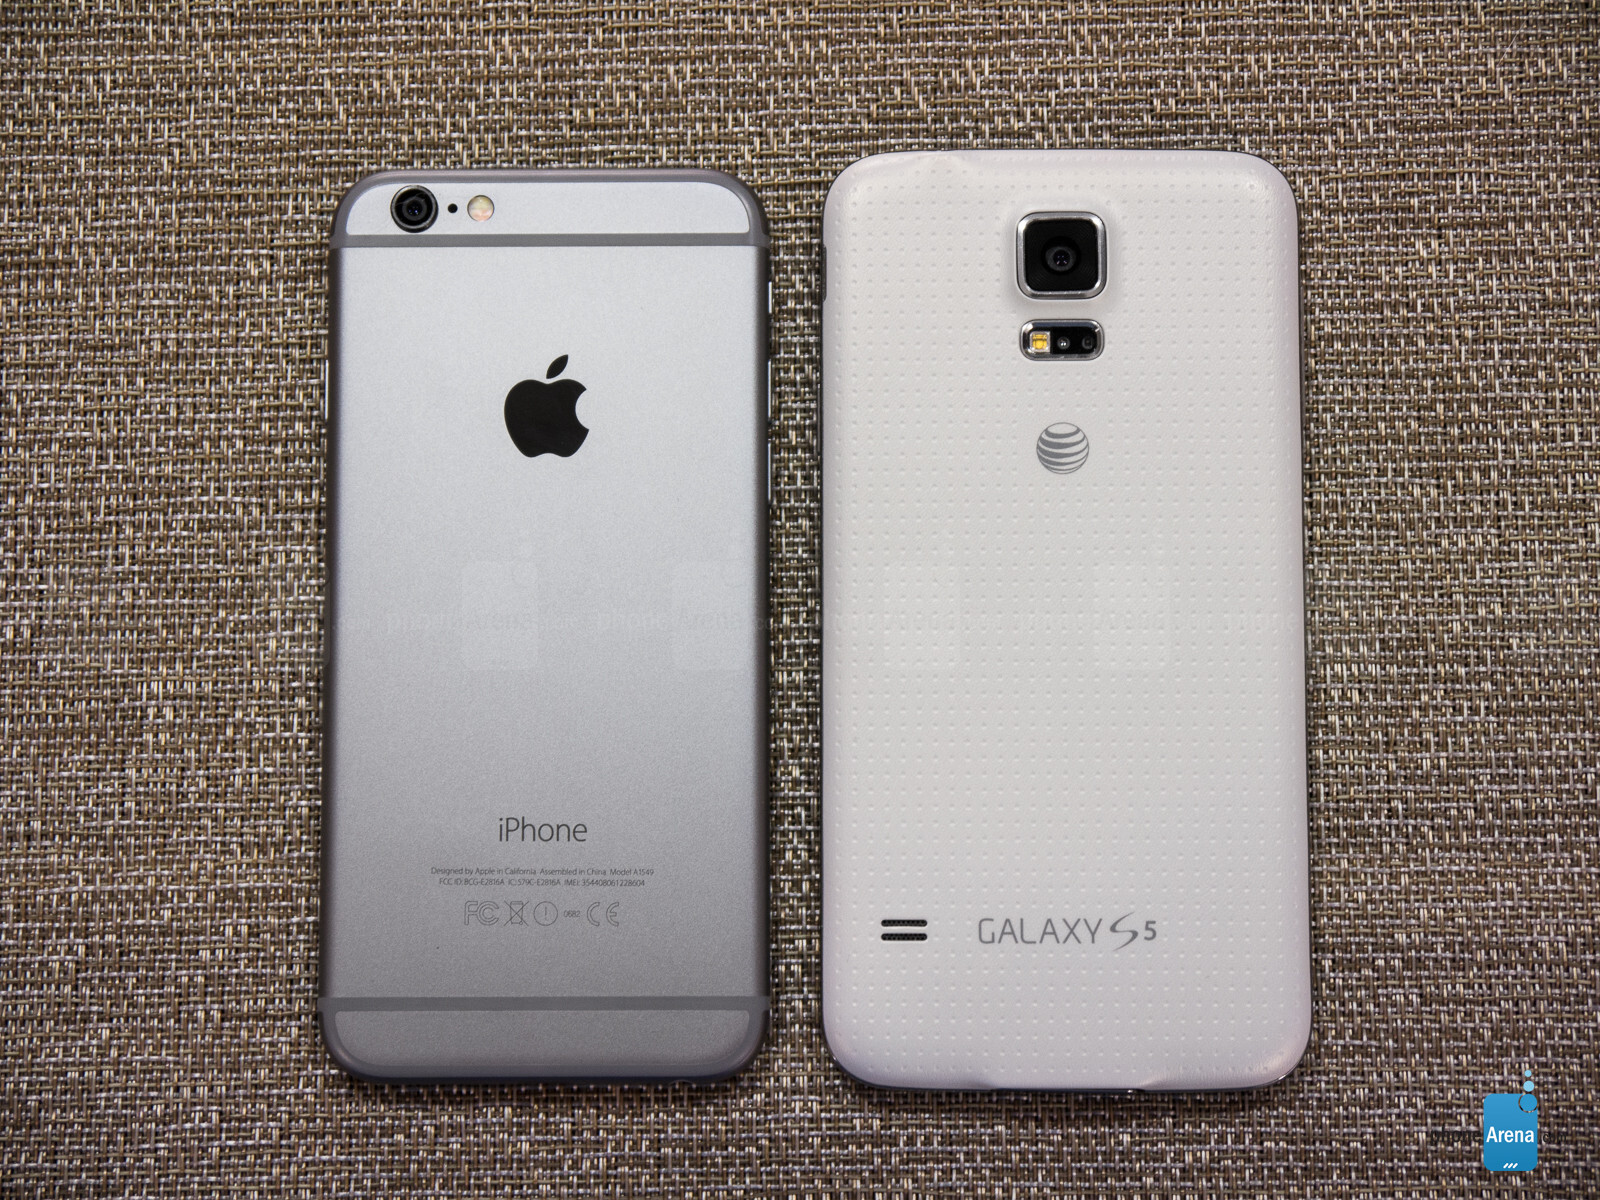 iphone 6 vs samsung galaxy s5 apple iphone 6 vs samsung galaxy s5 19340